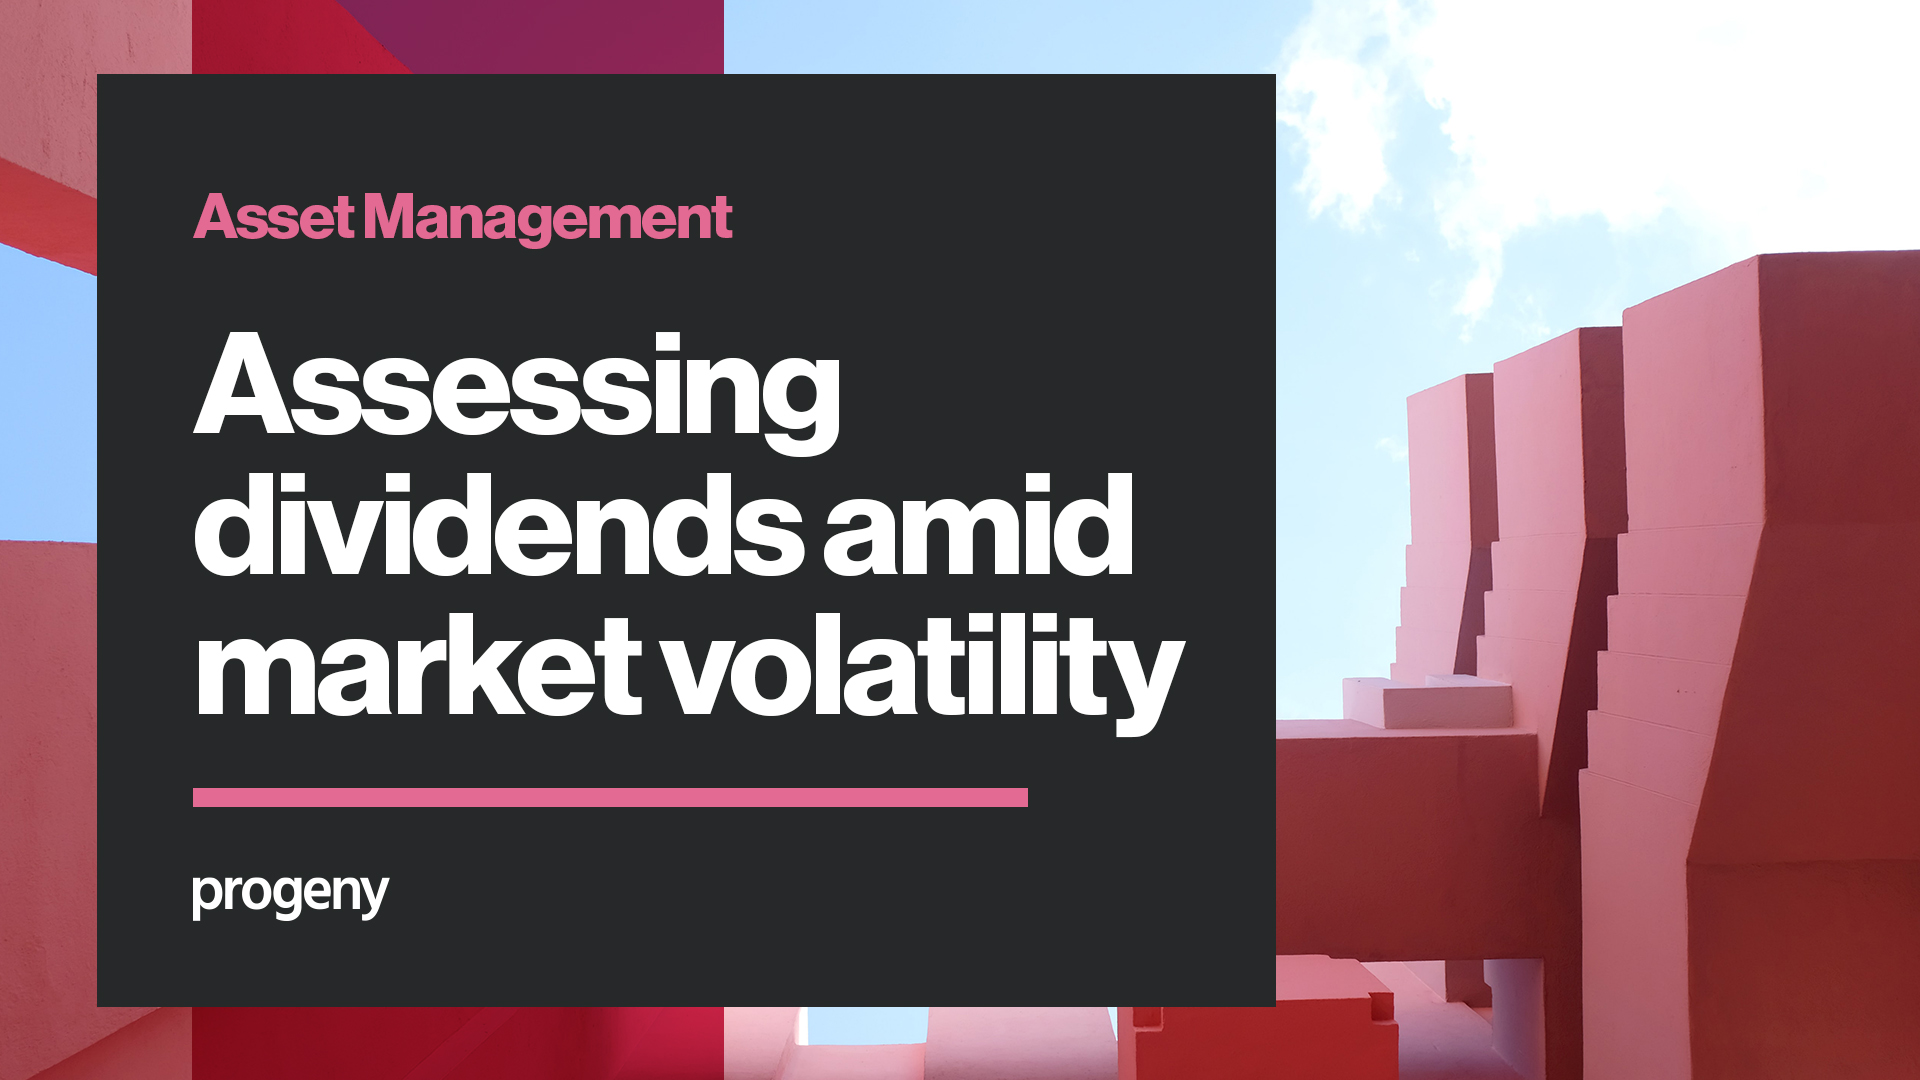 Assessing dividends amid market volatility